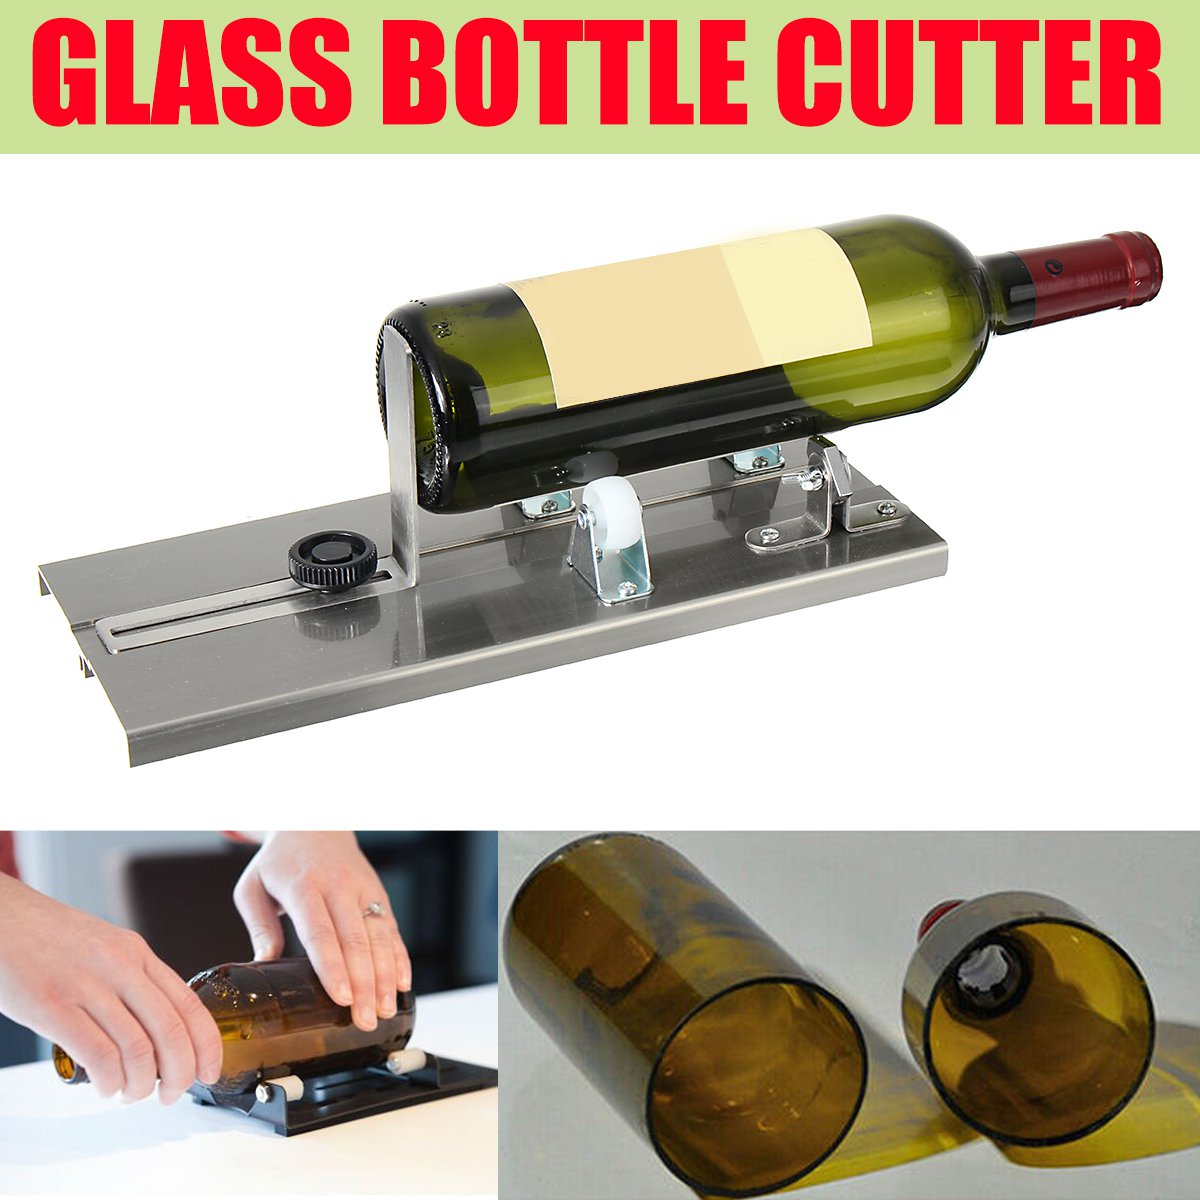 Glass Bottle Cutter Machine Beer Wine Jar Recycle Craft DIY Cutting Tool Kit Aluminum Alloy Construction Tools Glass Sculptures